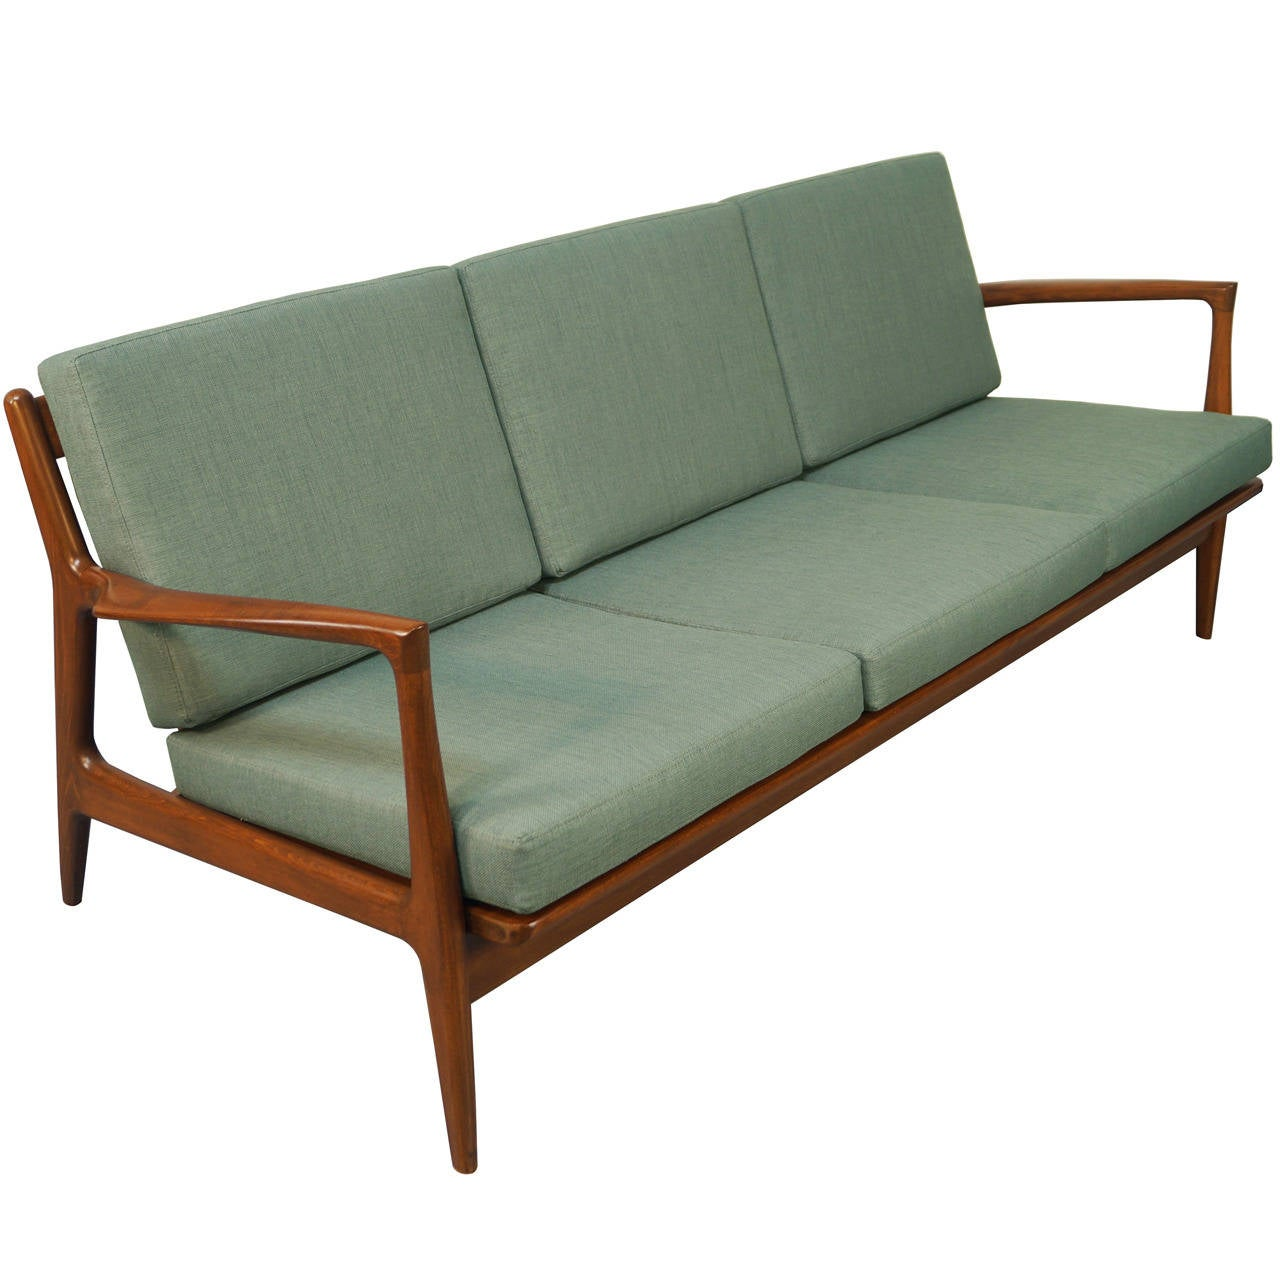 Danish modern sofa by ib kofod larsen at 1stdibs Danish modern furniture